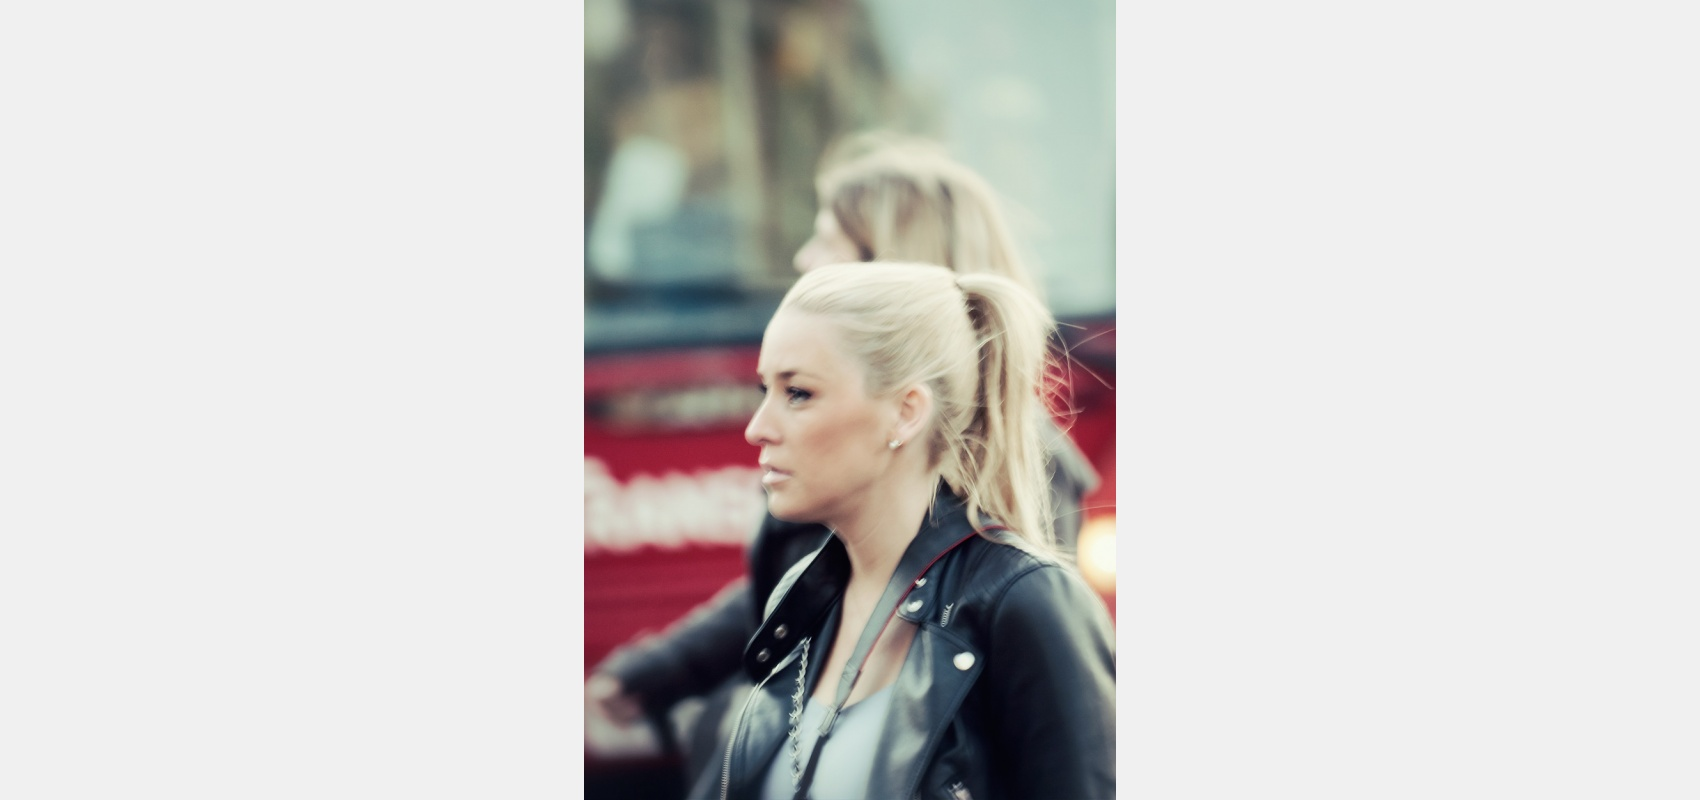 Street photography. Woman in leather jacket. London project.